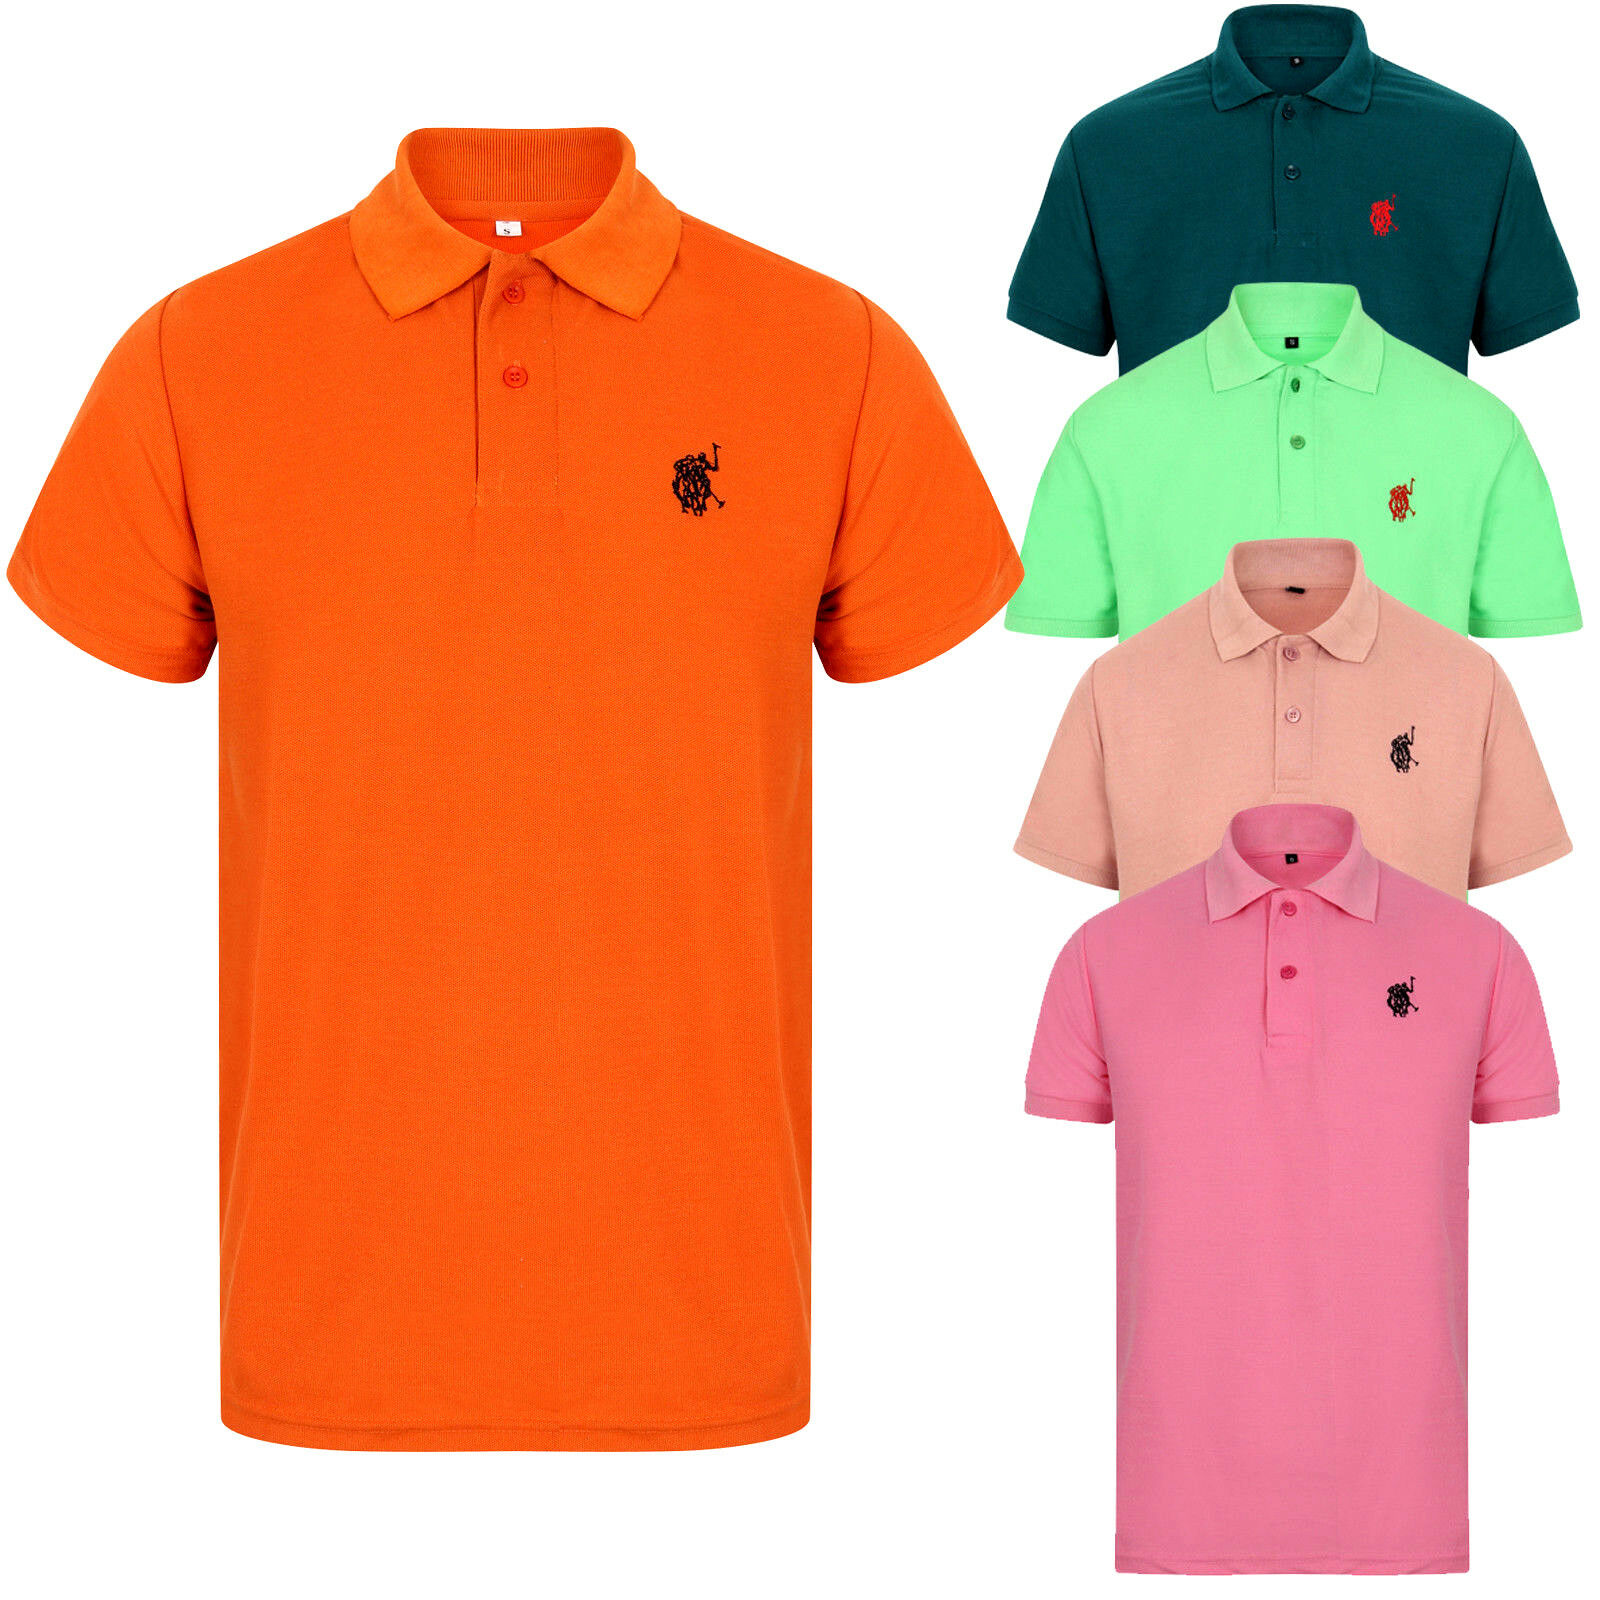 Smart Quality Mens Polo Shirt Size X Large